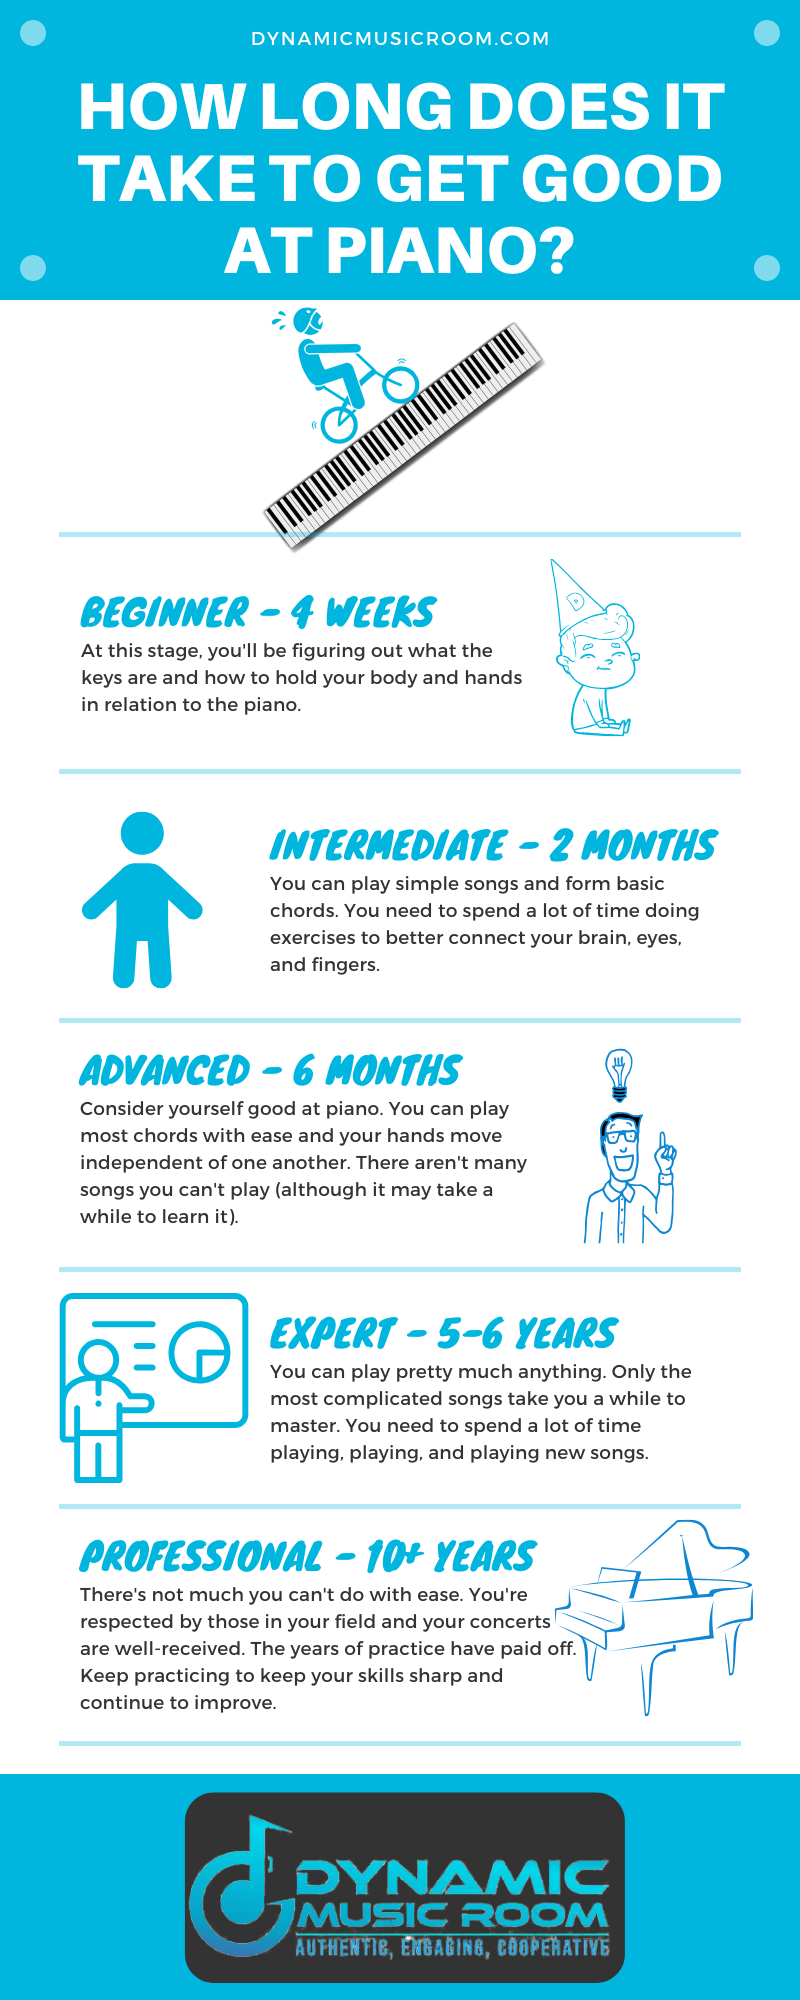 image how long does it take to get good at piano inforgraphic